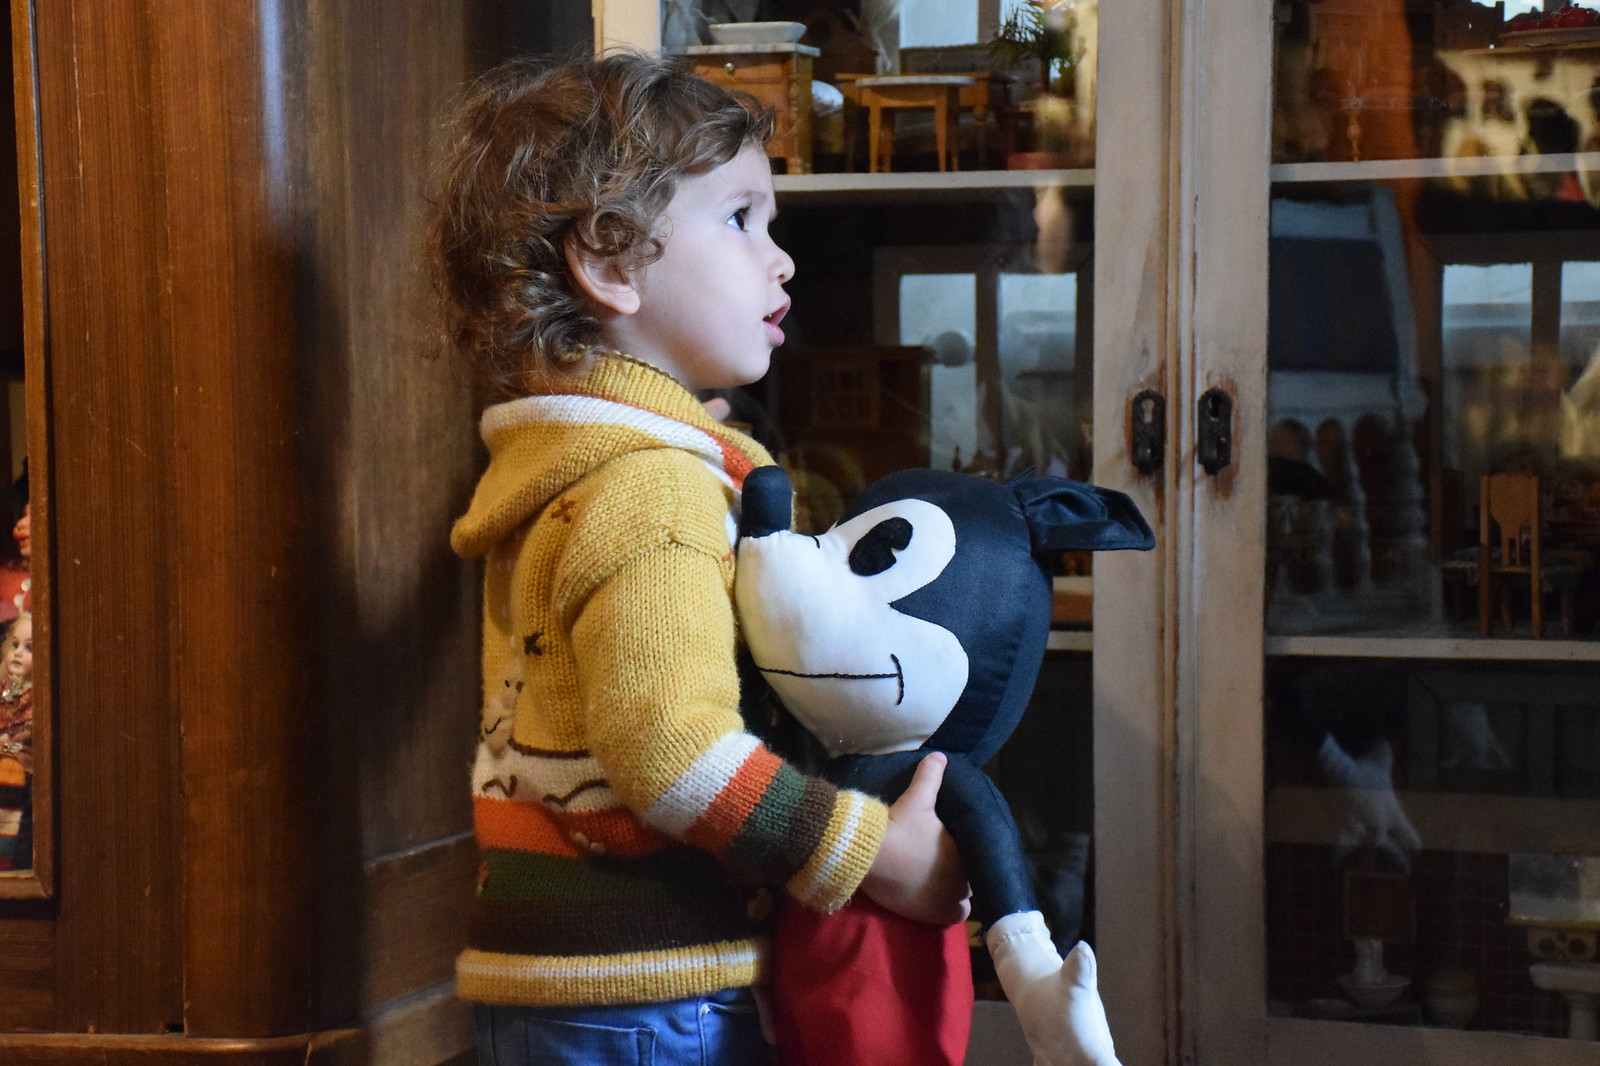 With and old fashioned Mickey Mouse at the toy museum